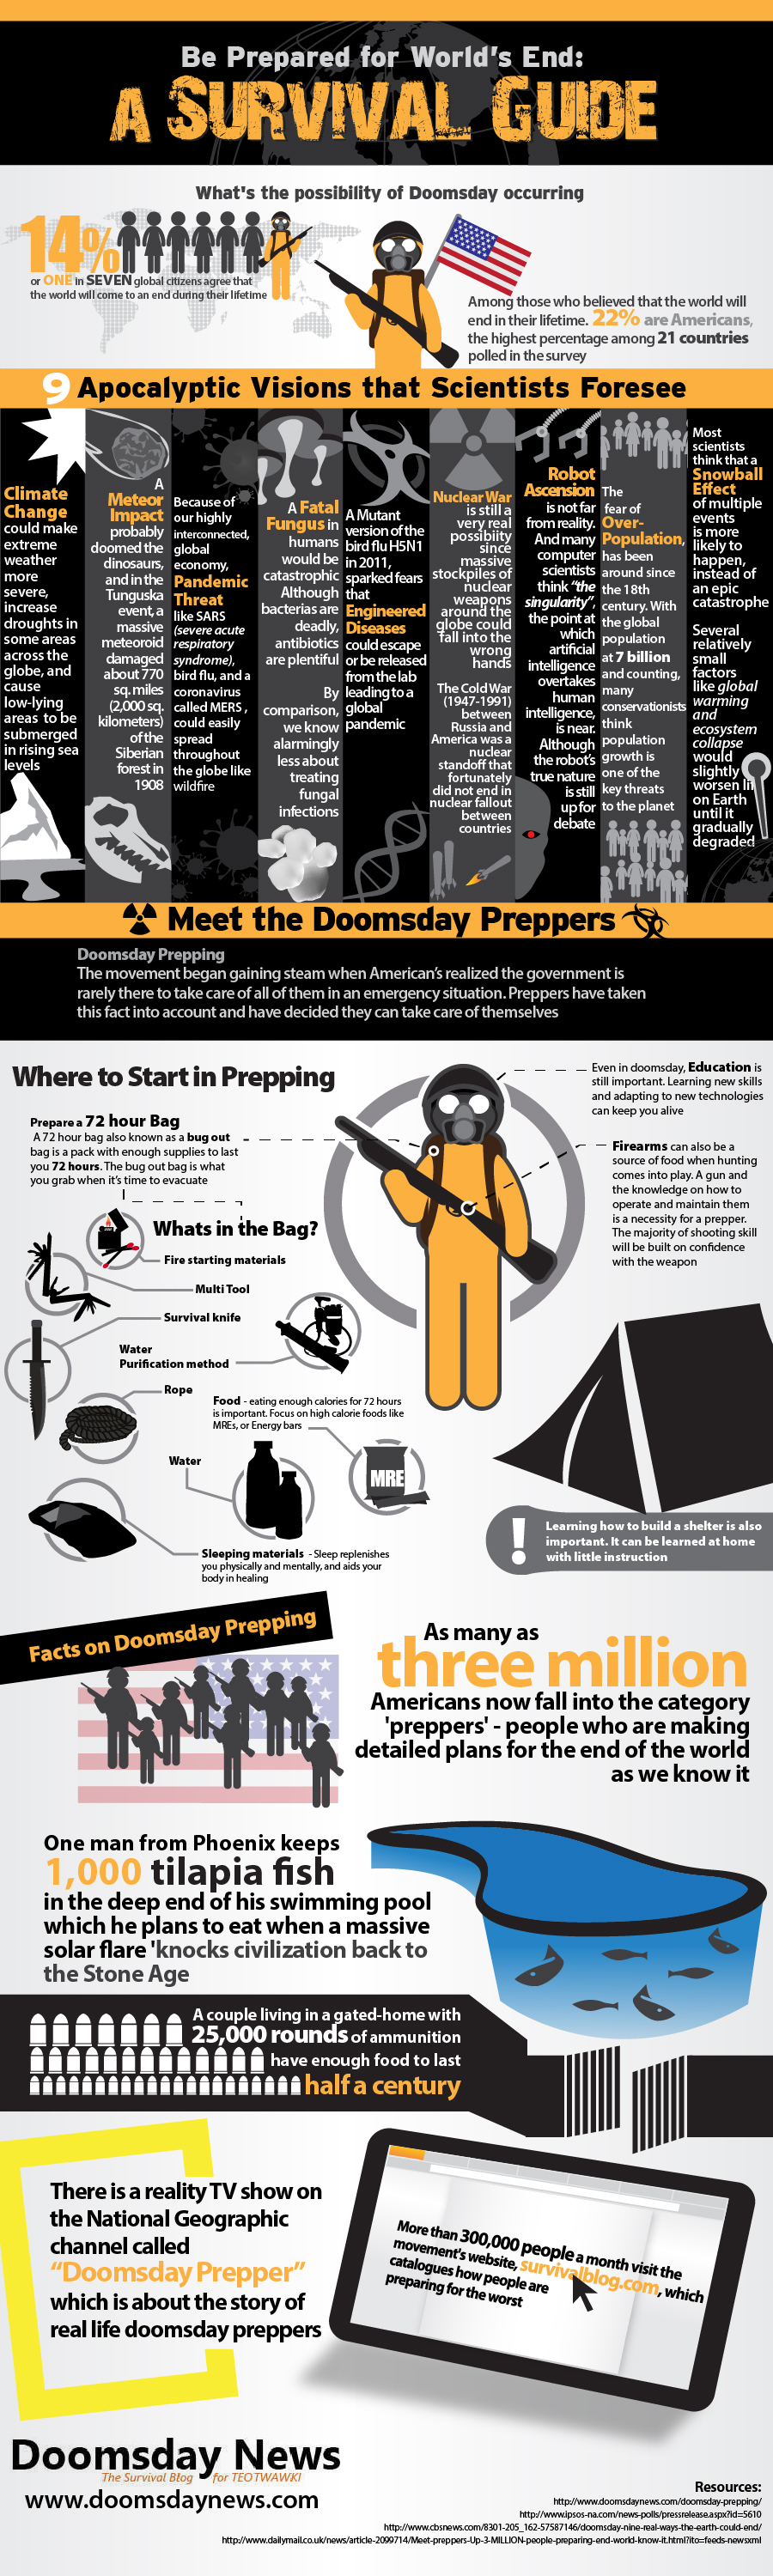 Our own doomsday survival info-graphic